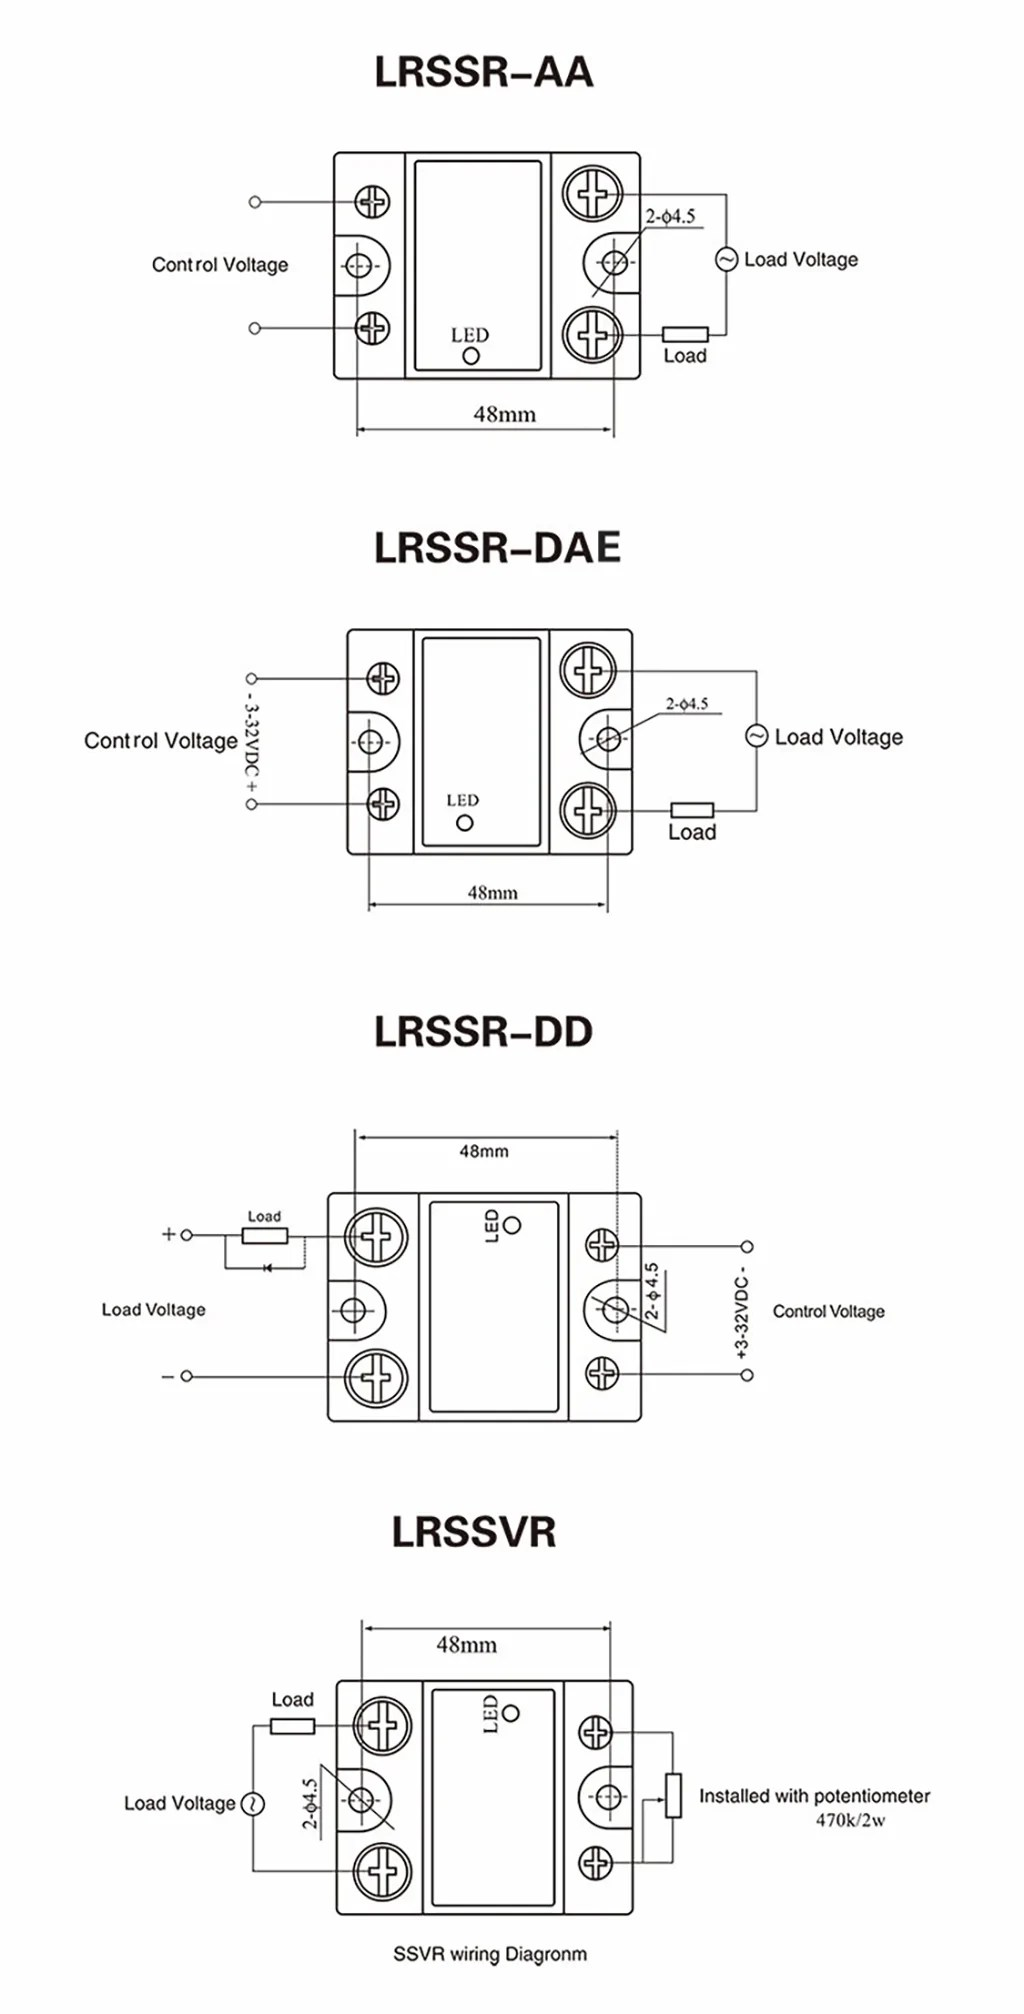 hight resolution of connecting diagram lrssr